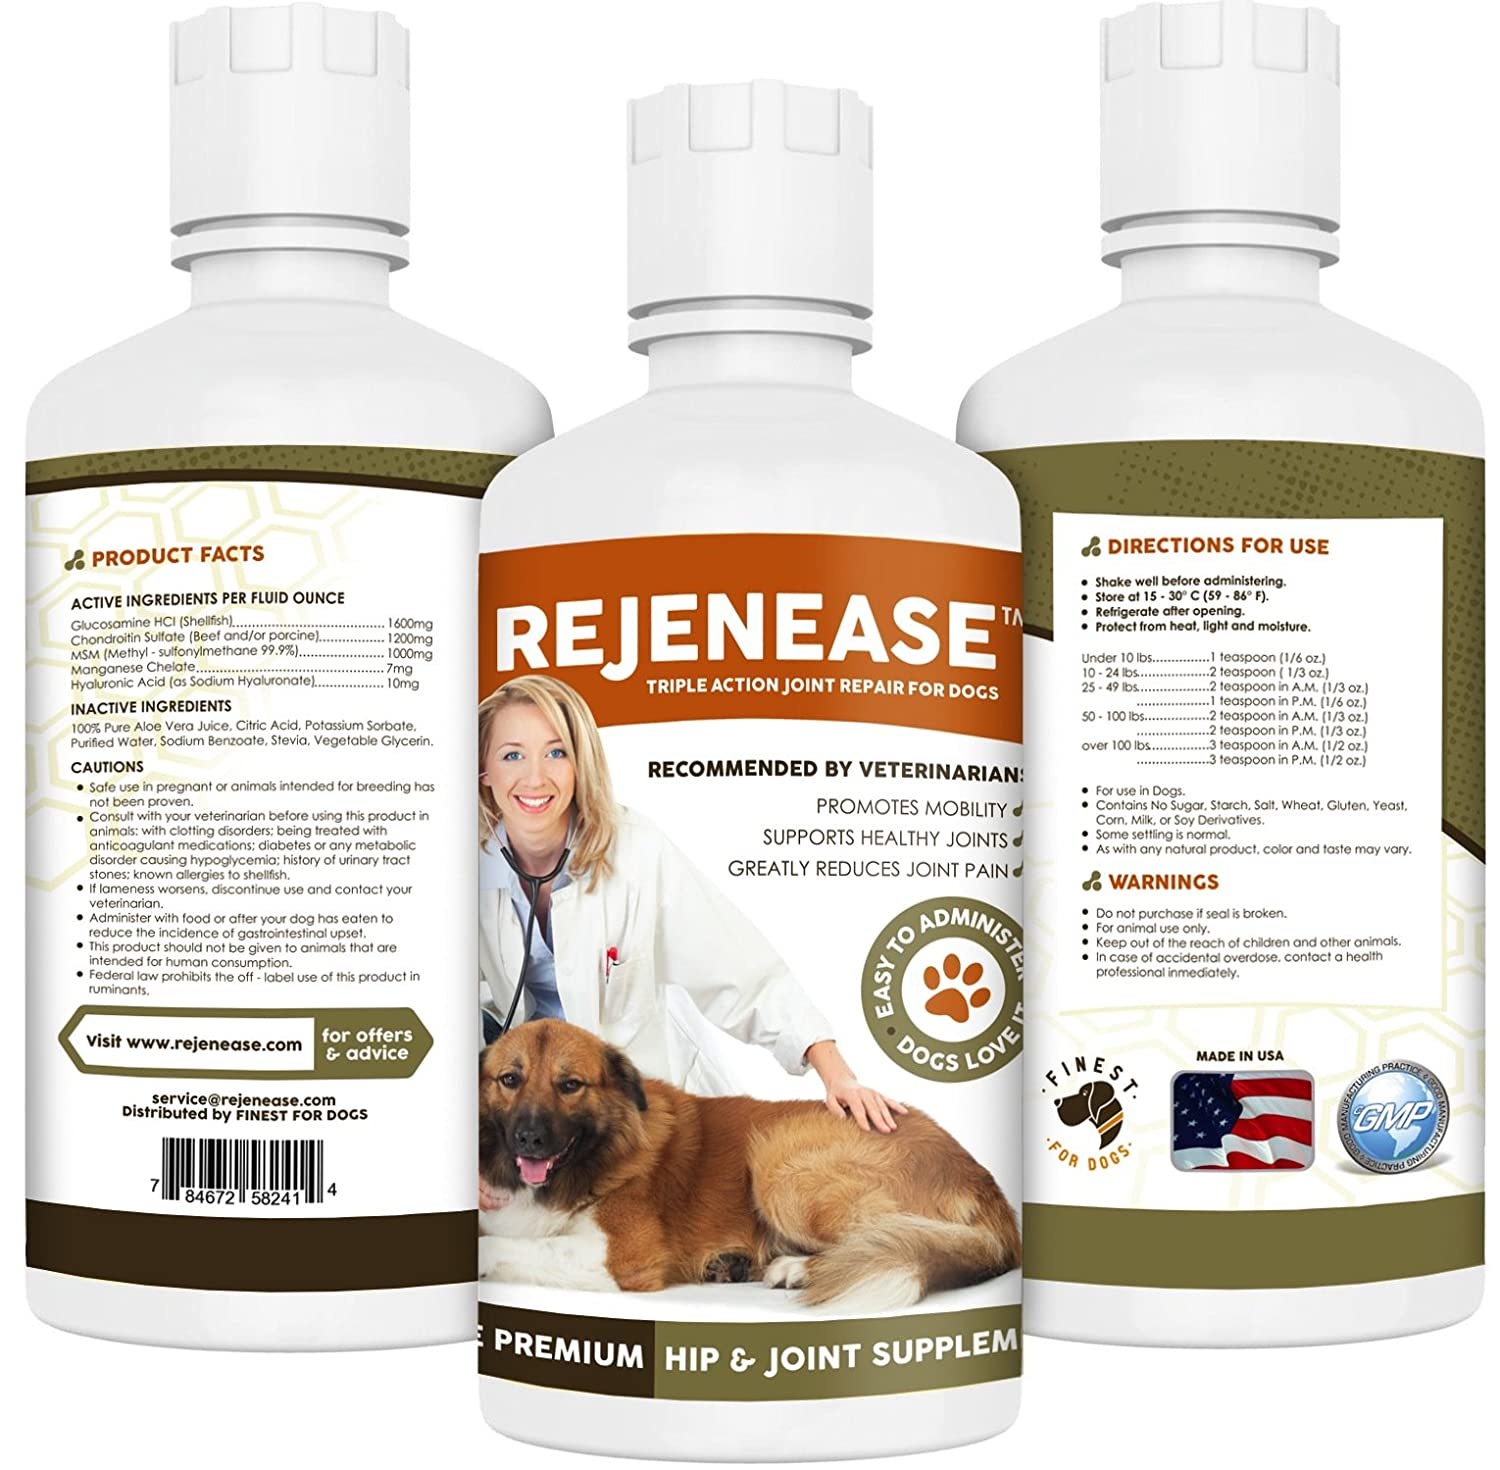 Glucosamine for Dogs - Hip and Joint Supplement for Maximum Mobility, Pain Relief and Joint Health for Dogs. All Natural Liquid Glucosamine, Chondroitin & MSM. Large 32 Oz Bottle. Made in USA. Results in 30 Days or Your Money Back. arthritis and joint pain solution medical health care product